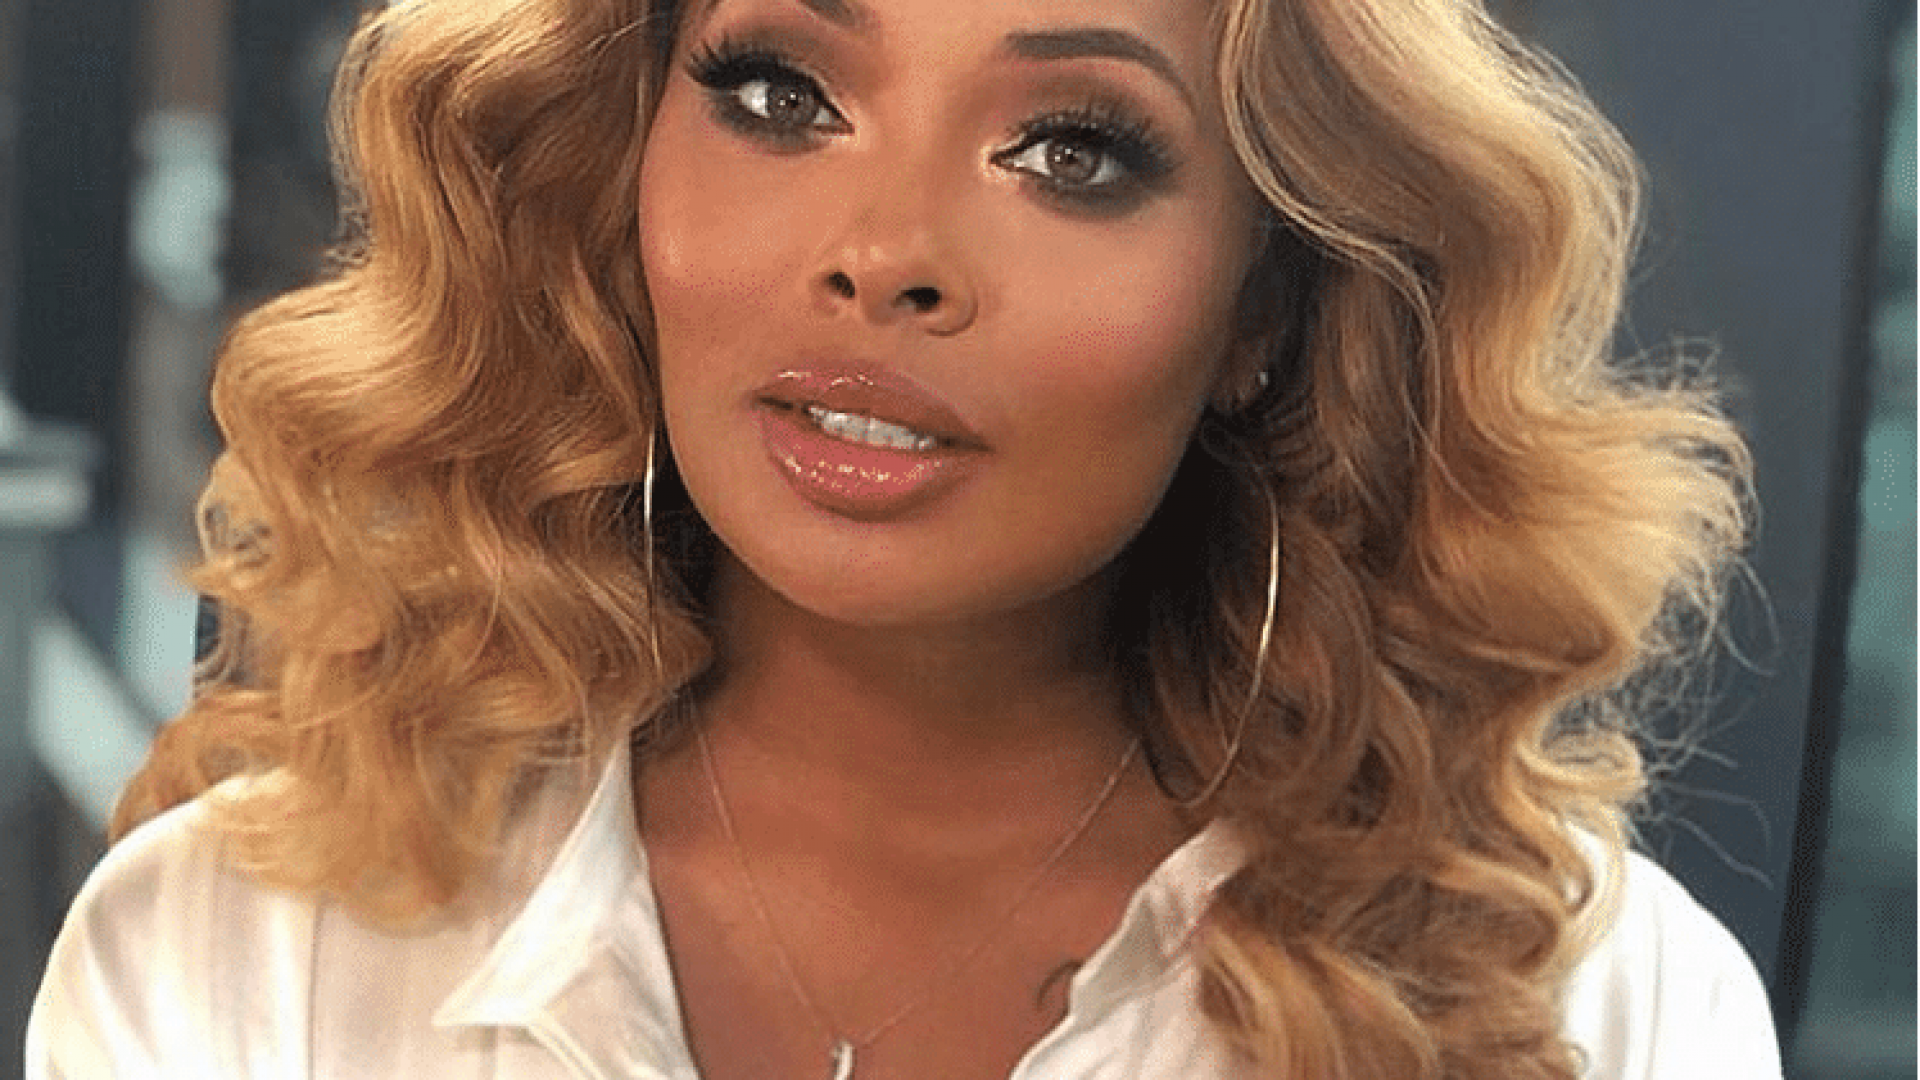 eva-marcille-shares-a-heartbreaking-message-on-her-ig-account